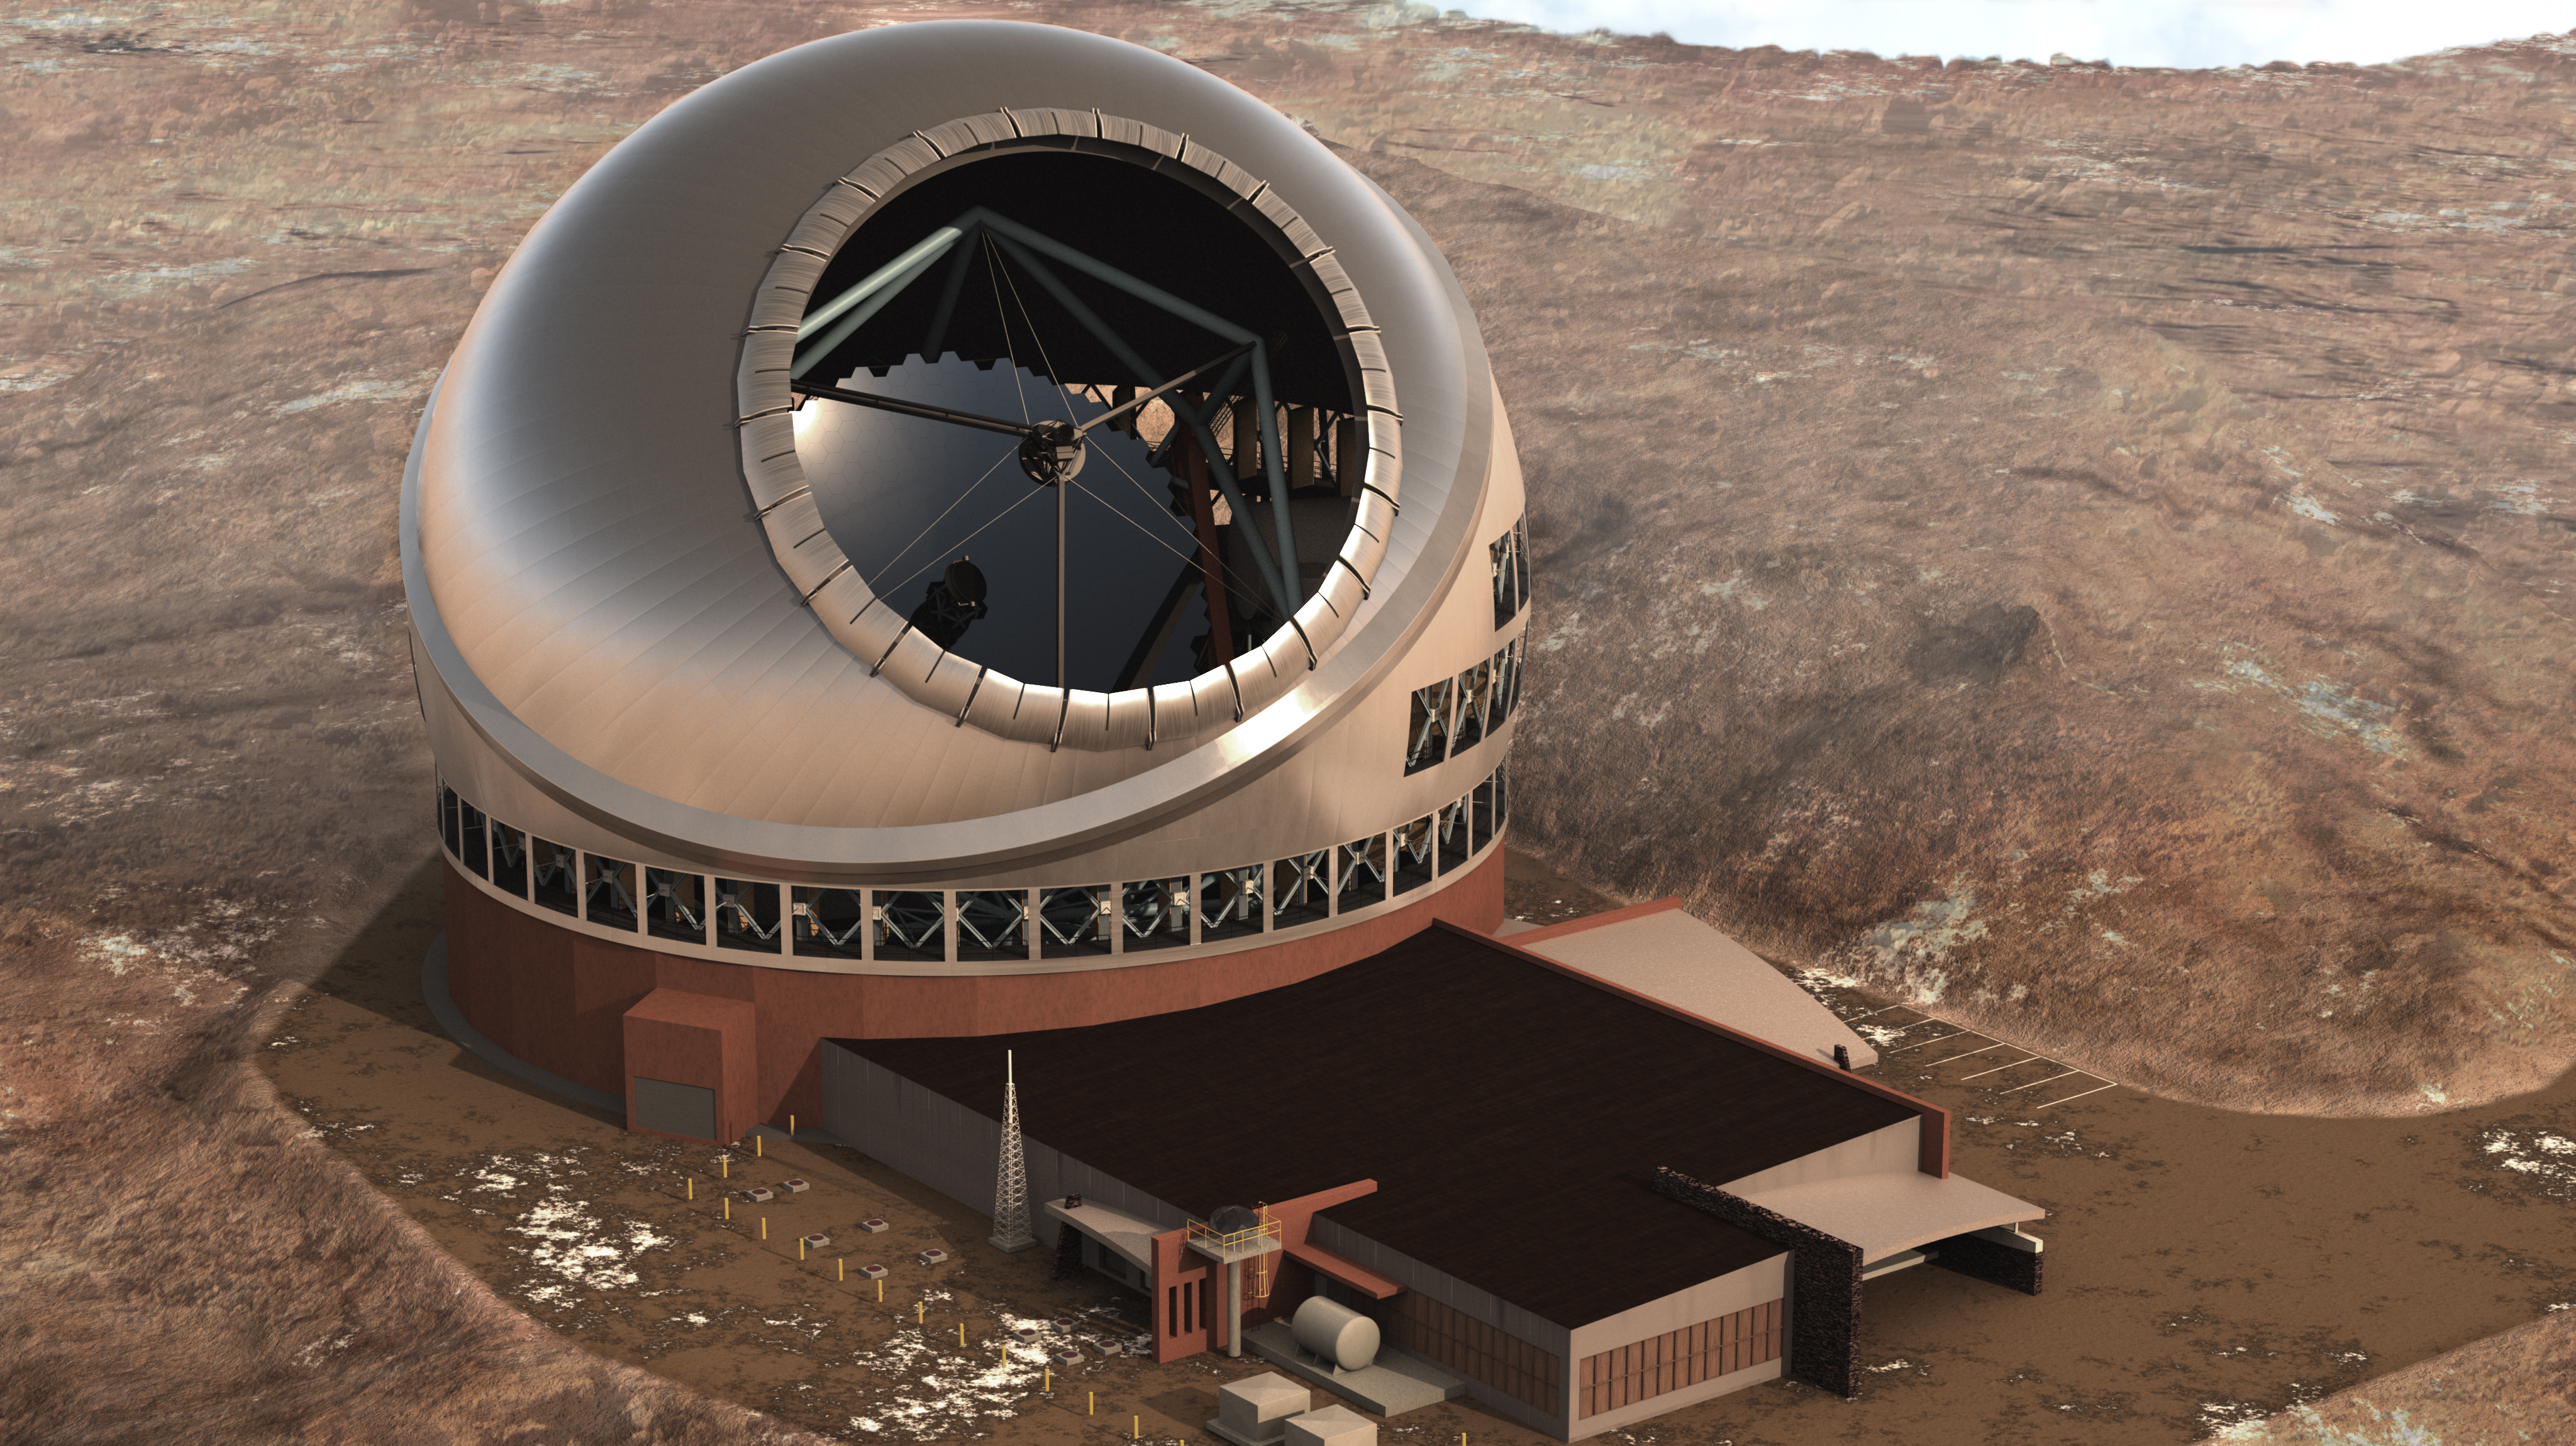 Hawaii Approves Plan for Giant Telescope Atop Dormant Volcano